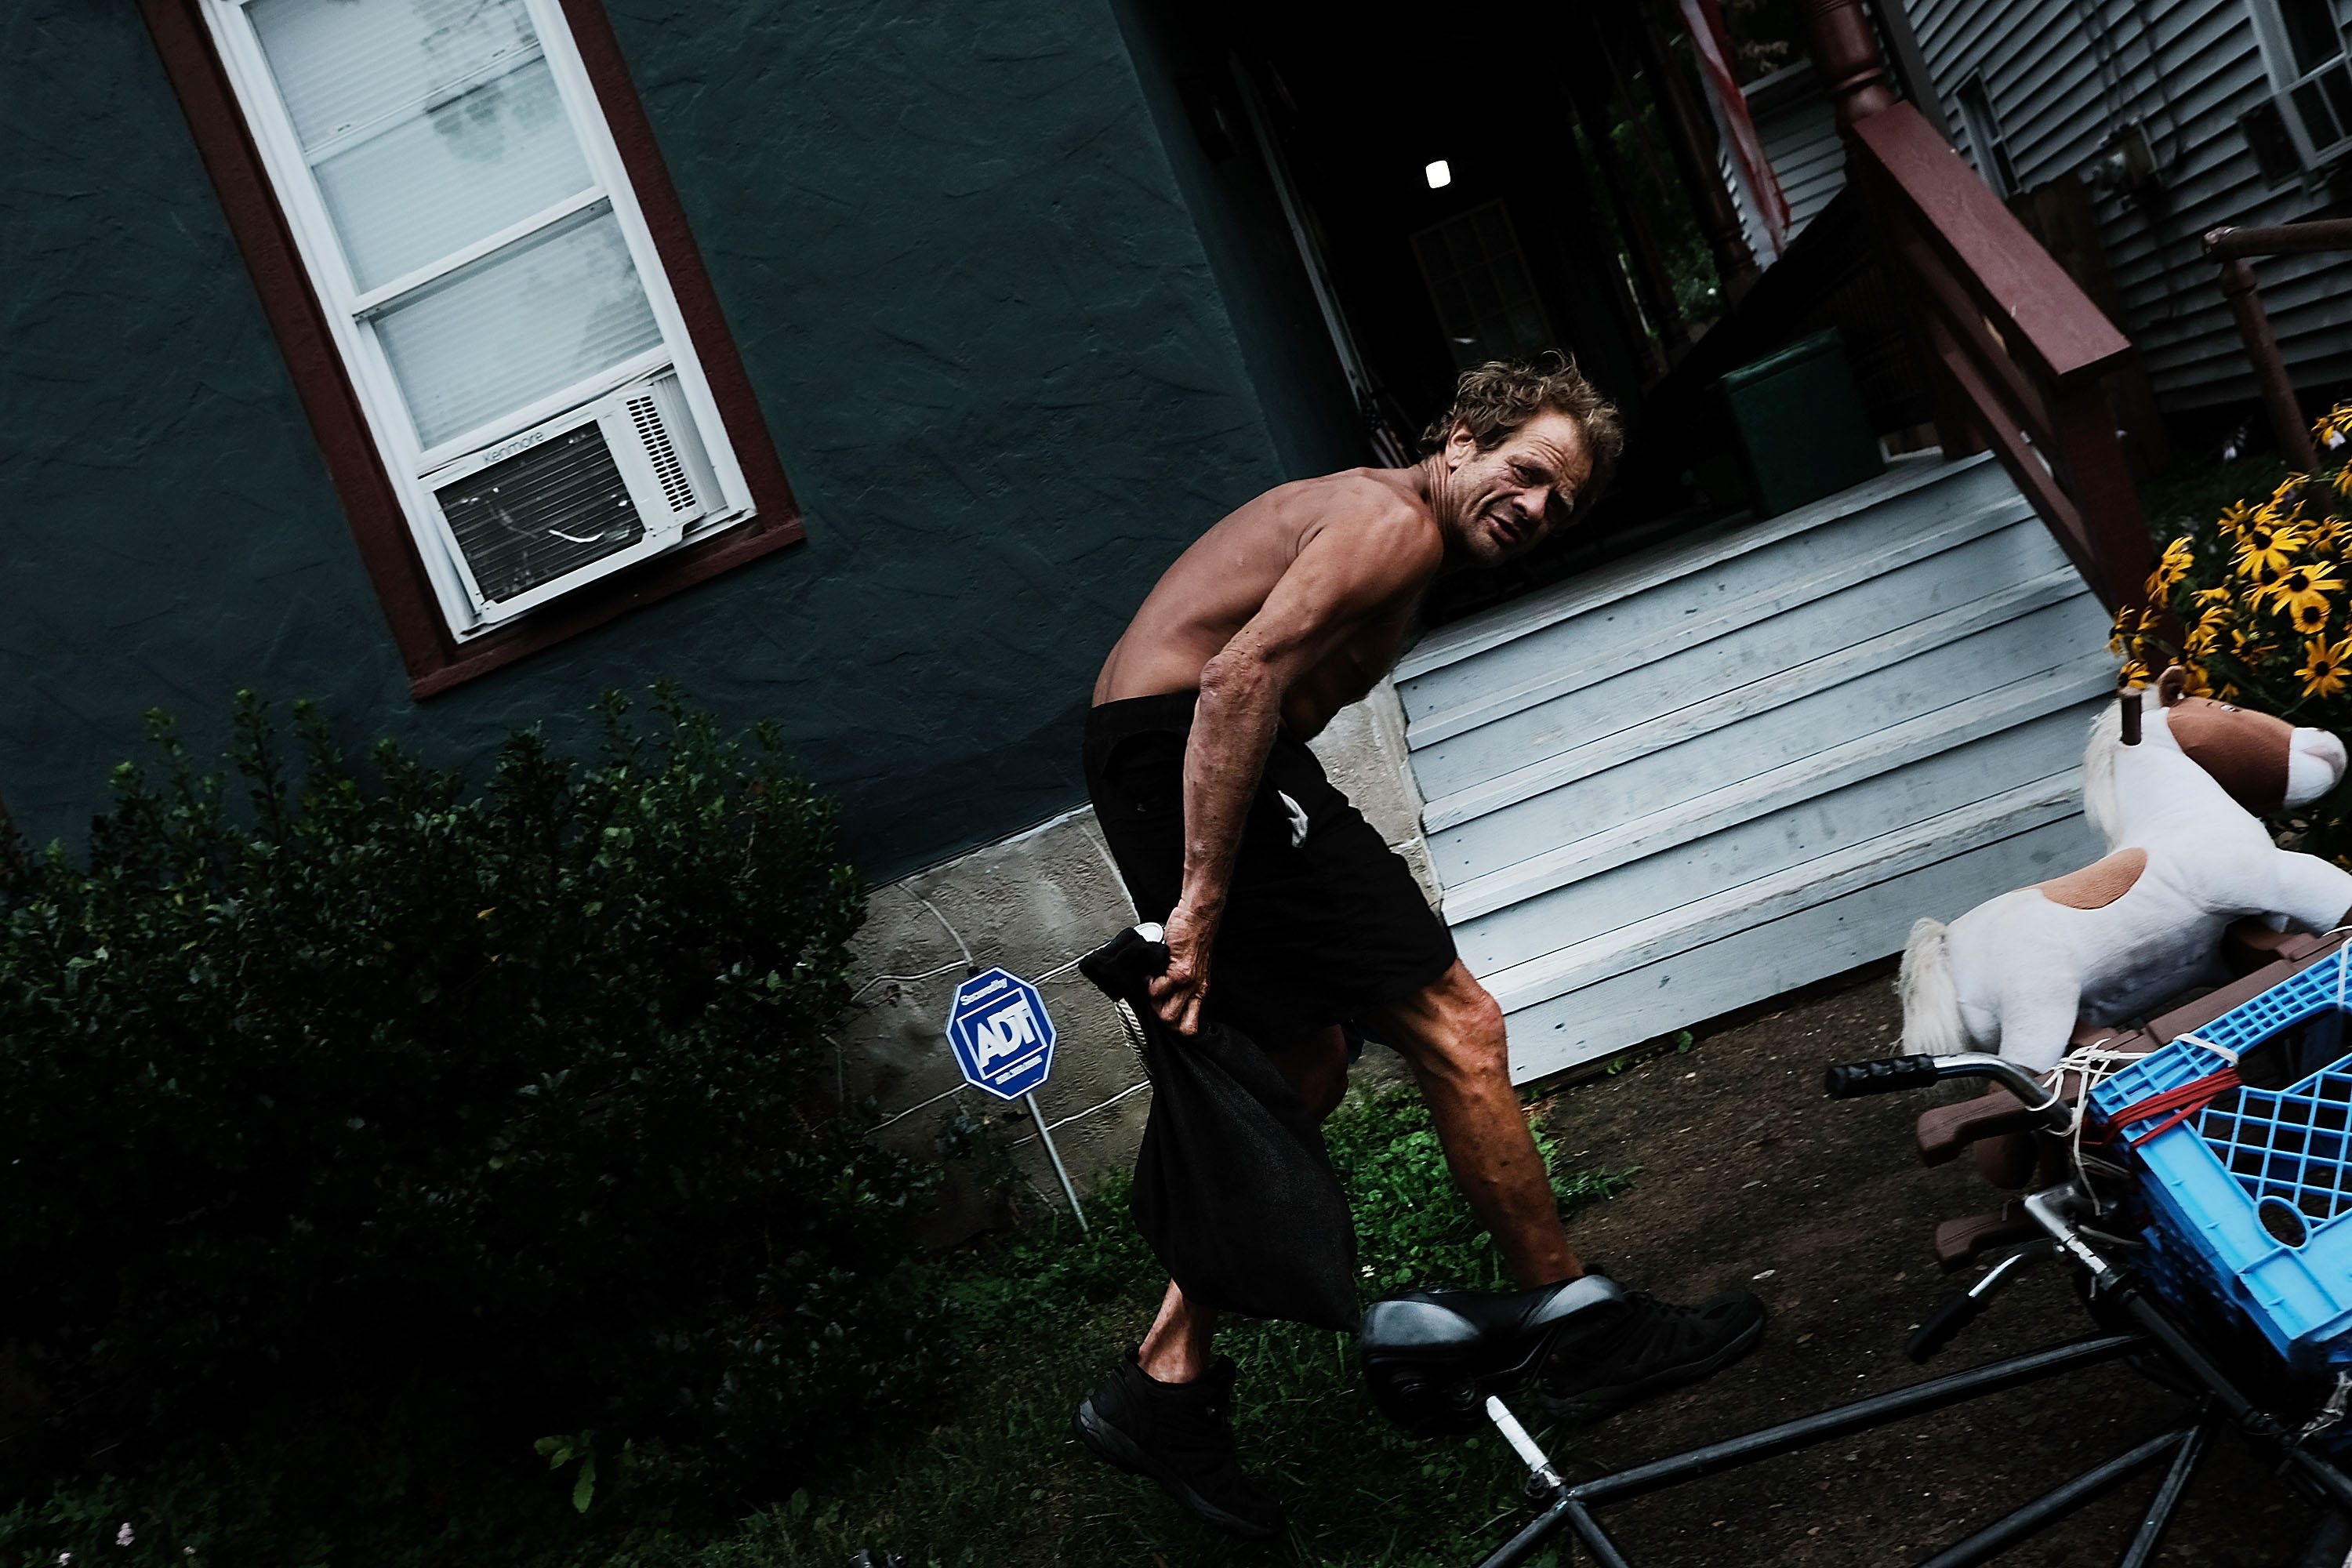 A man walks through the struggling city of Williamsport, which has recently seen an epidemic of opioid use among its population on July 13, 2017 in Williamsport, Pennsylvania.